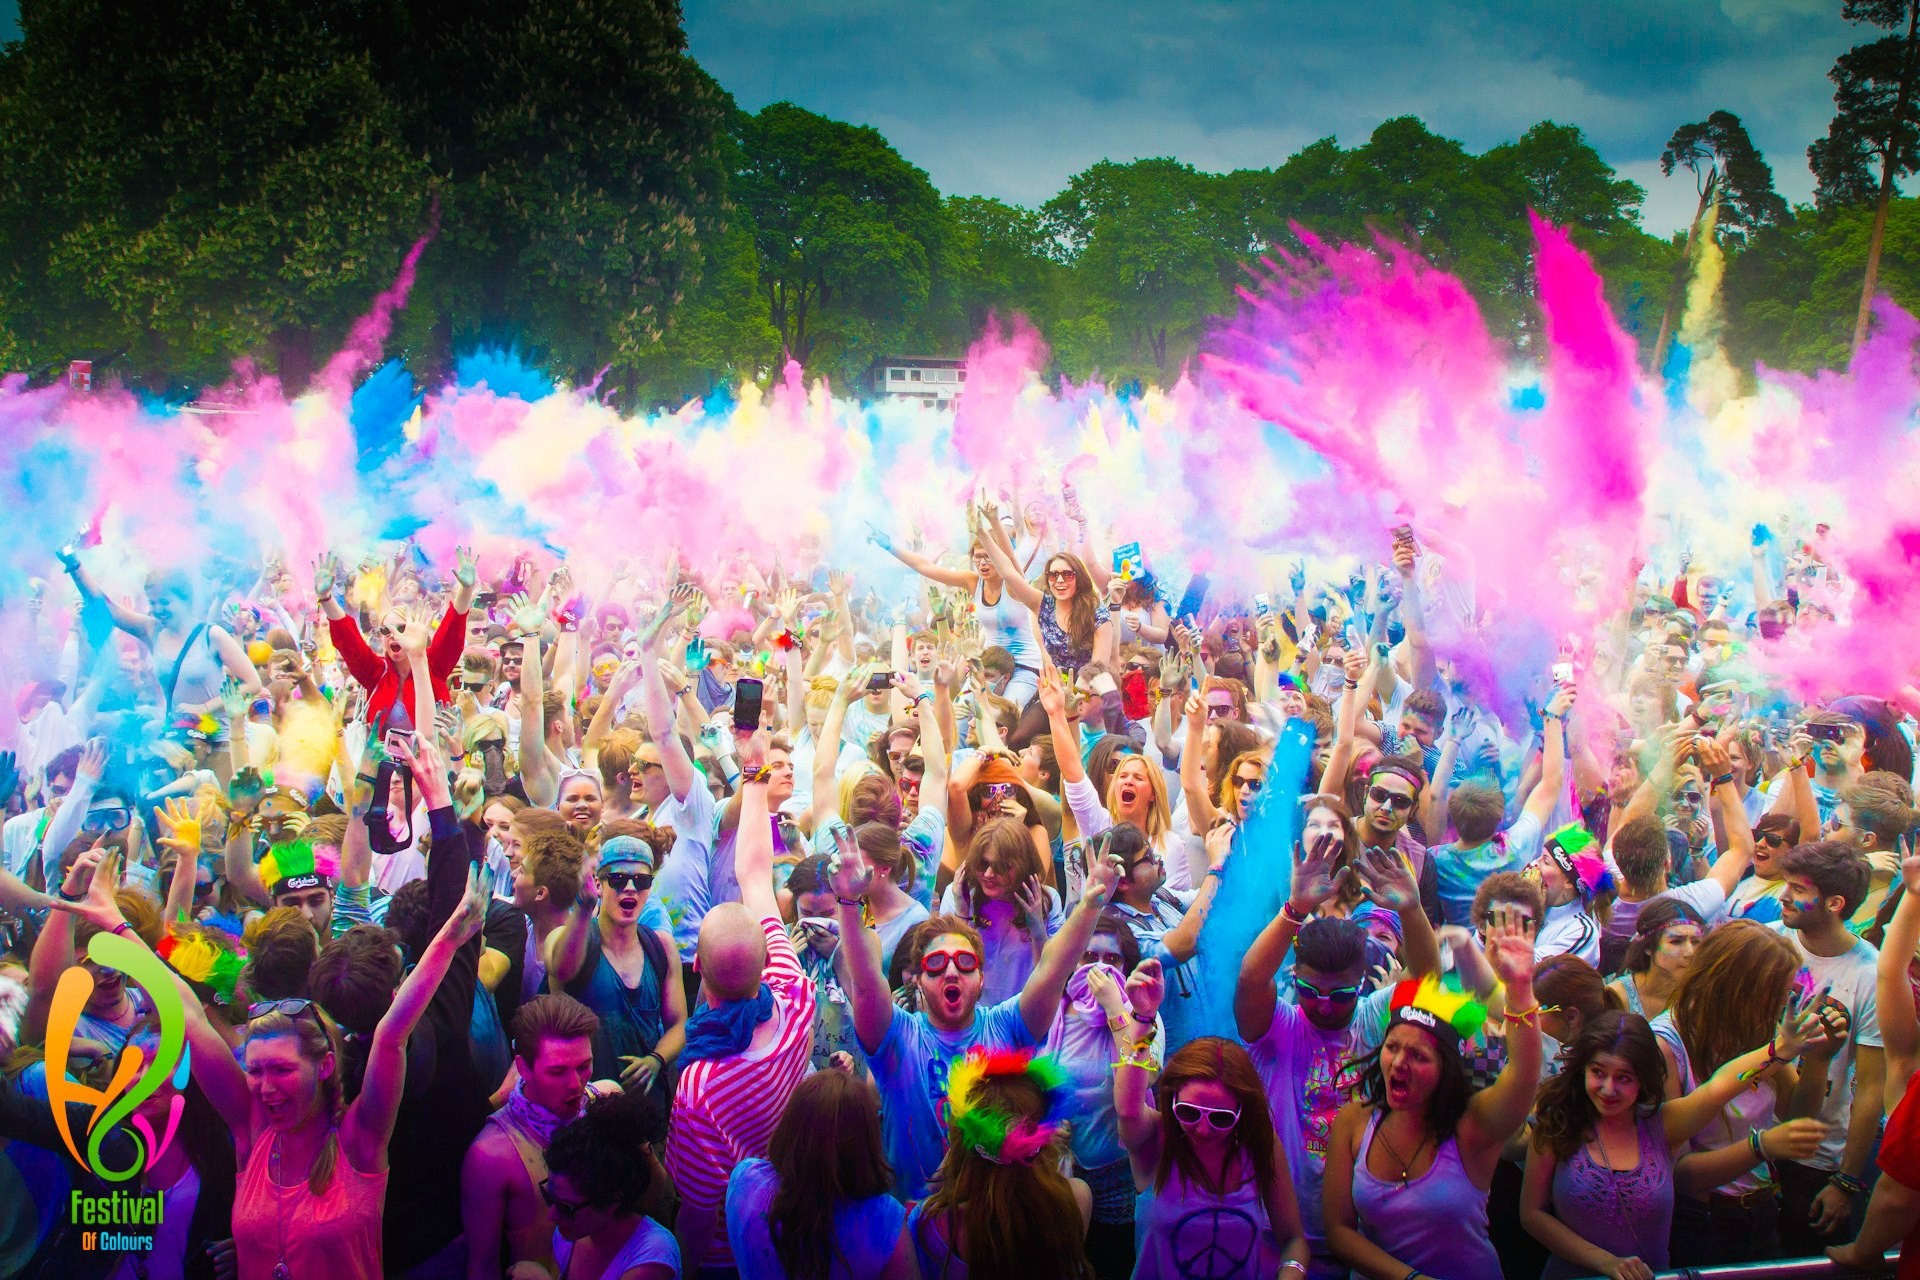 Peoples Celebrating Holi Festival of Colors Wallpapers HD Wallpapers 1920x1280